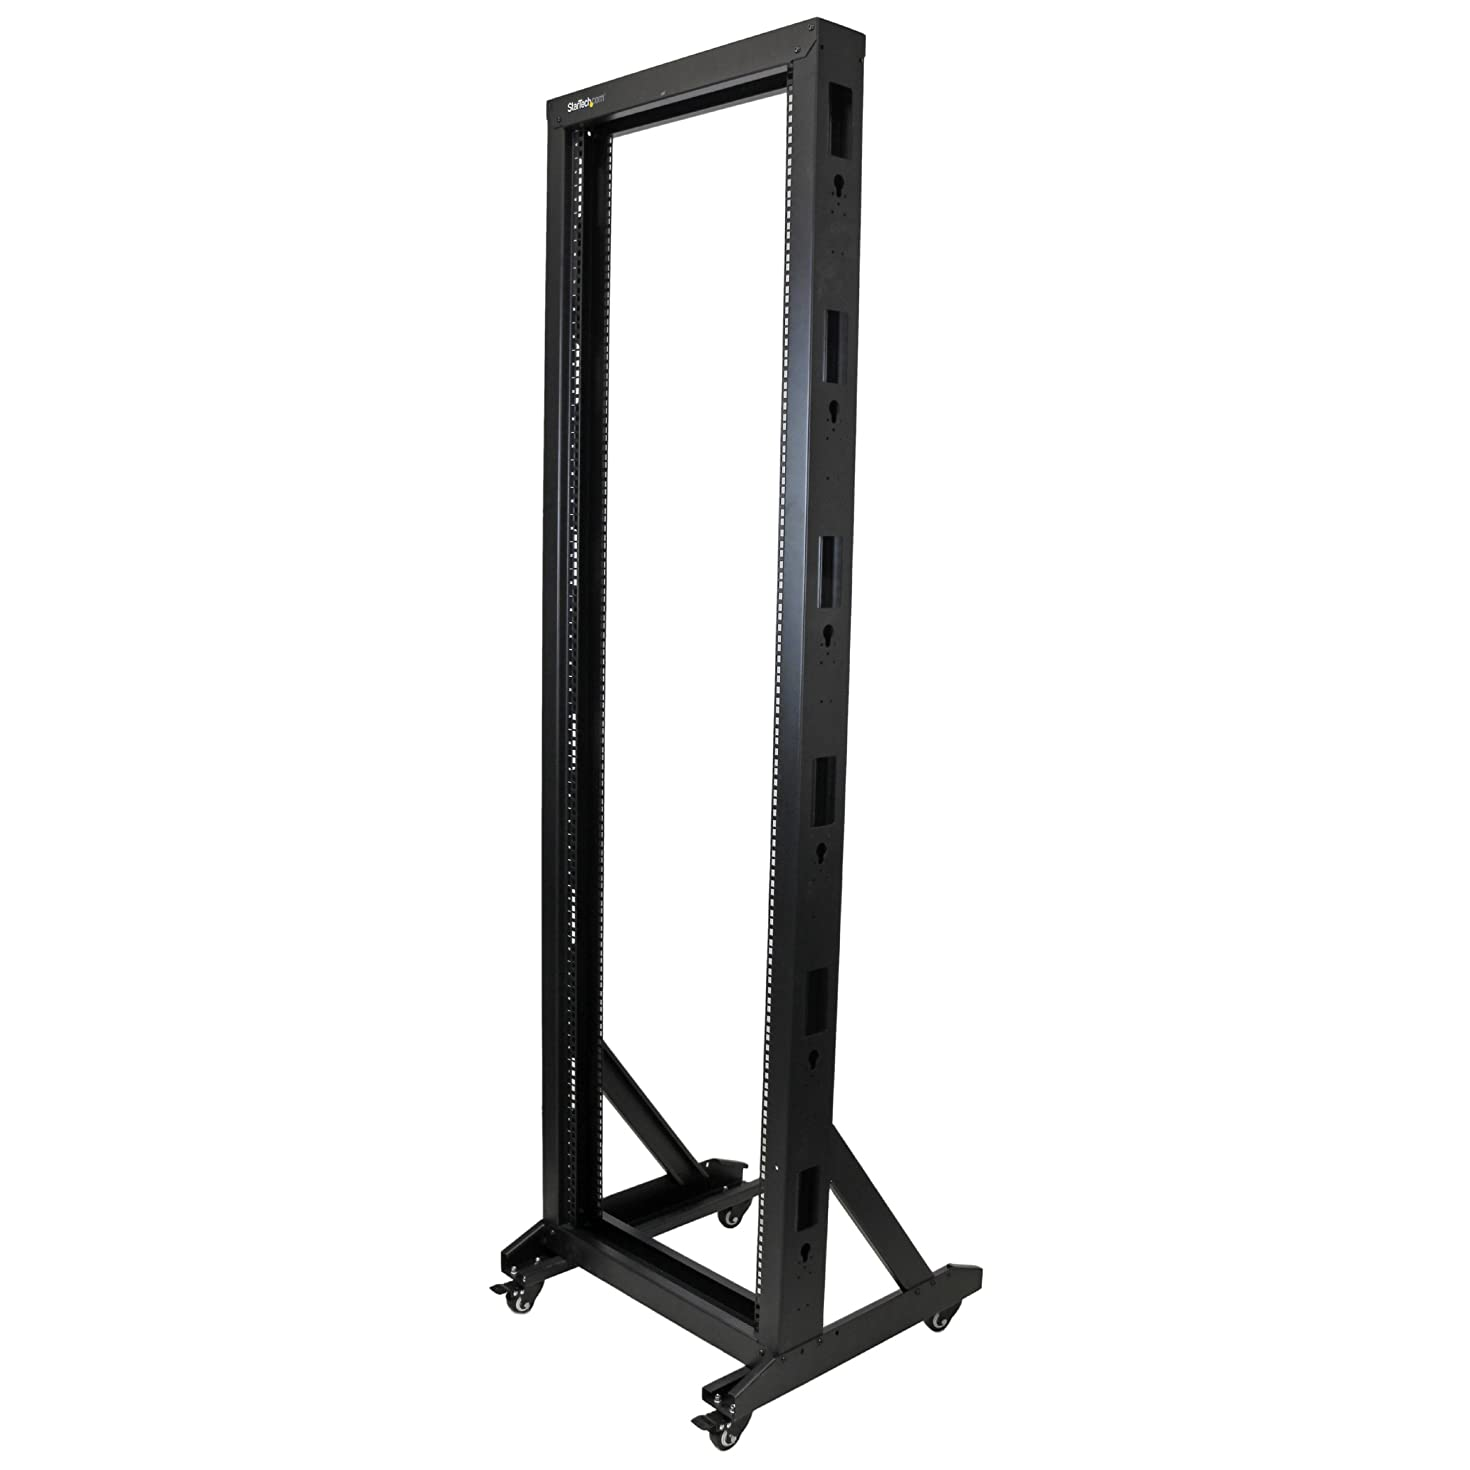 StarTech.com 2-Post Server Rack with Sturdy Steel Construction and Casters - 42U